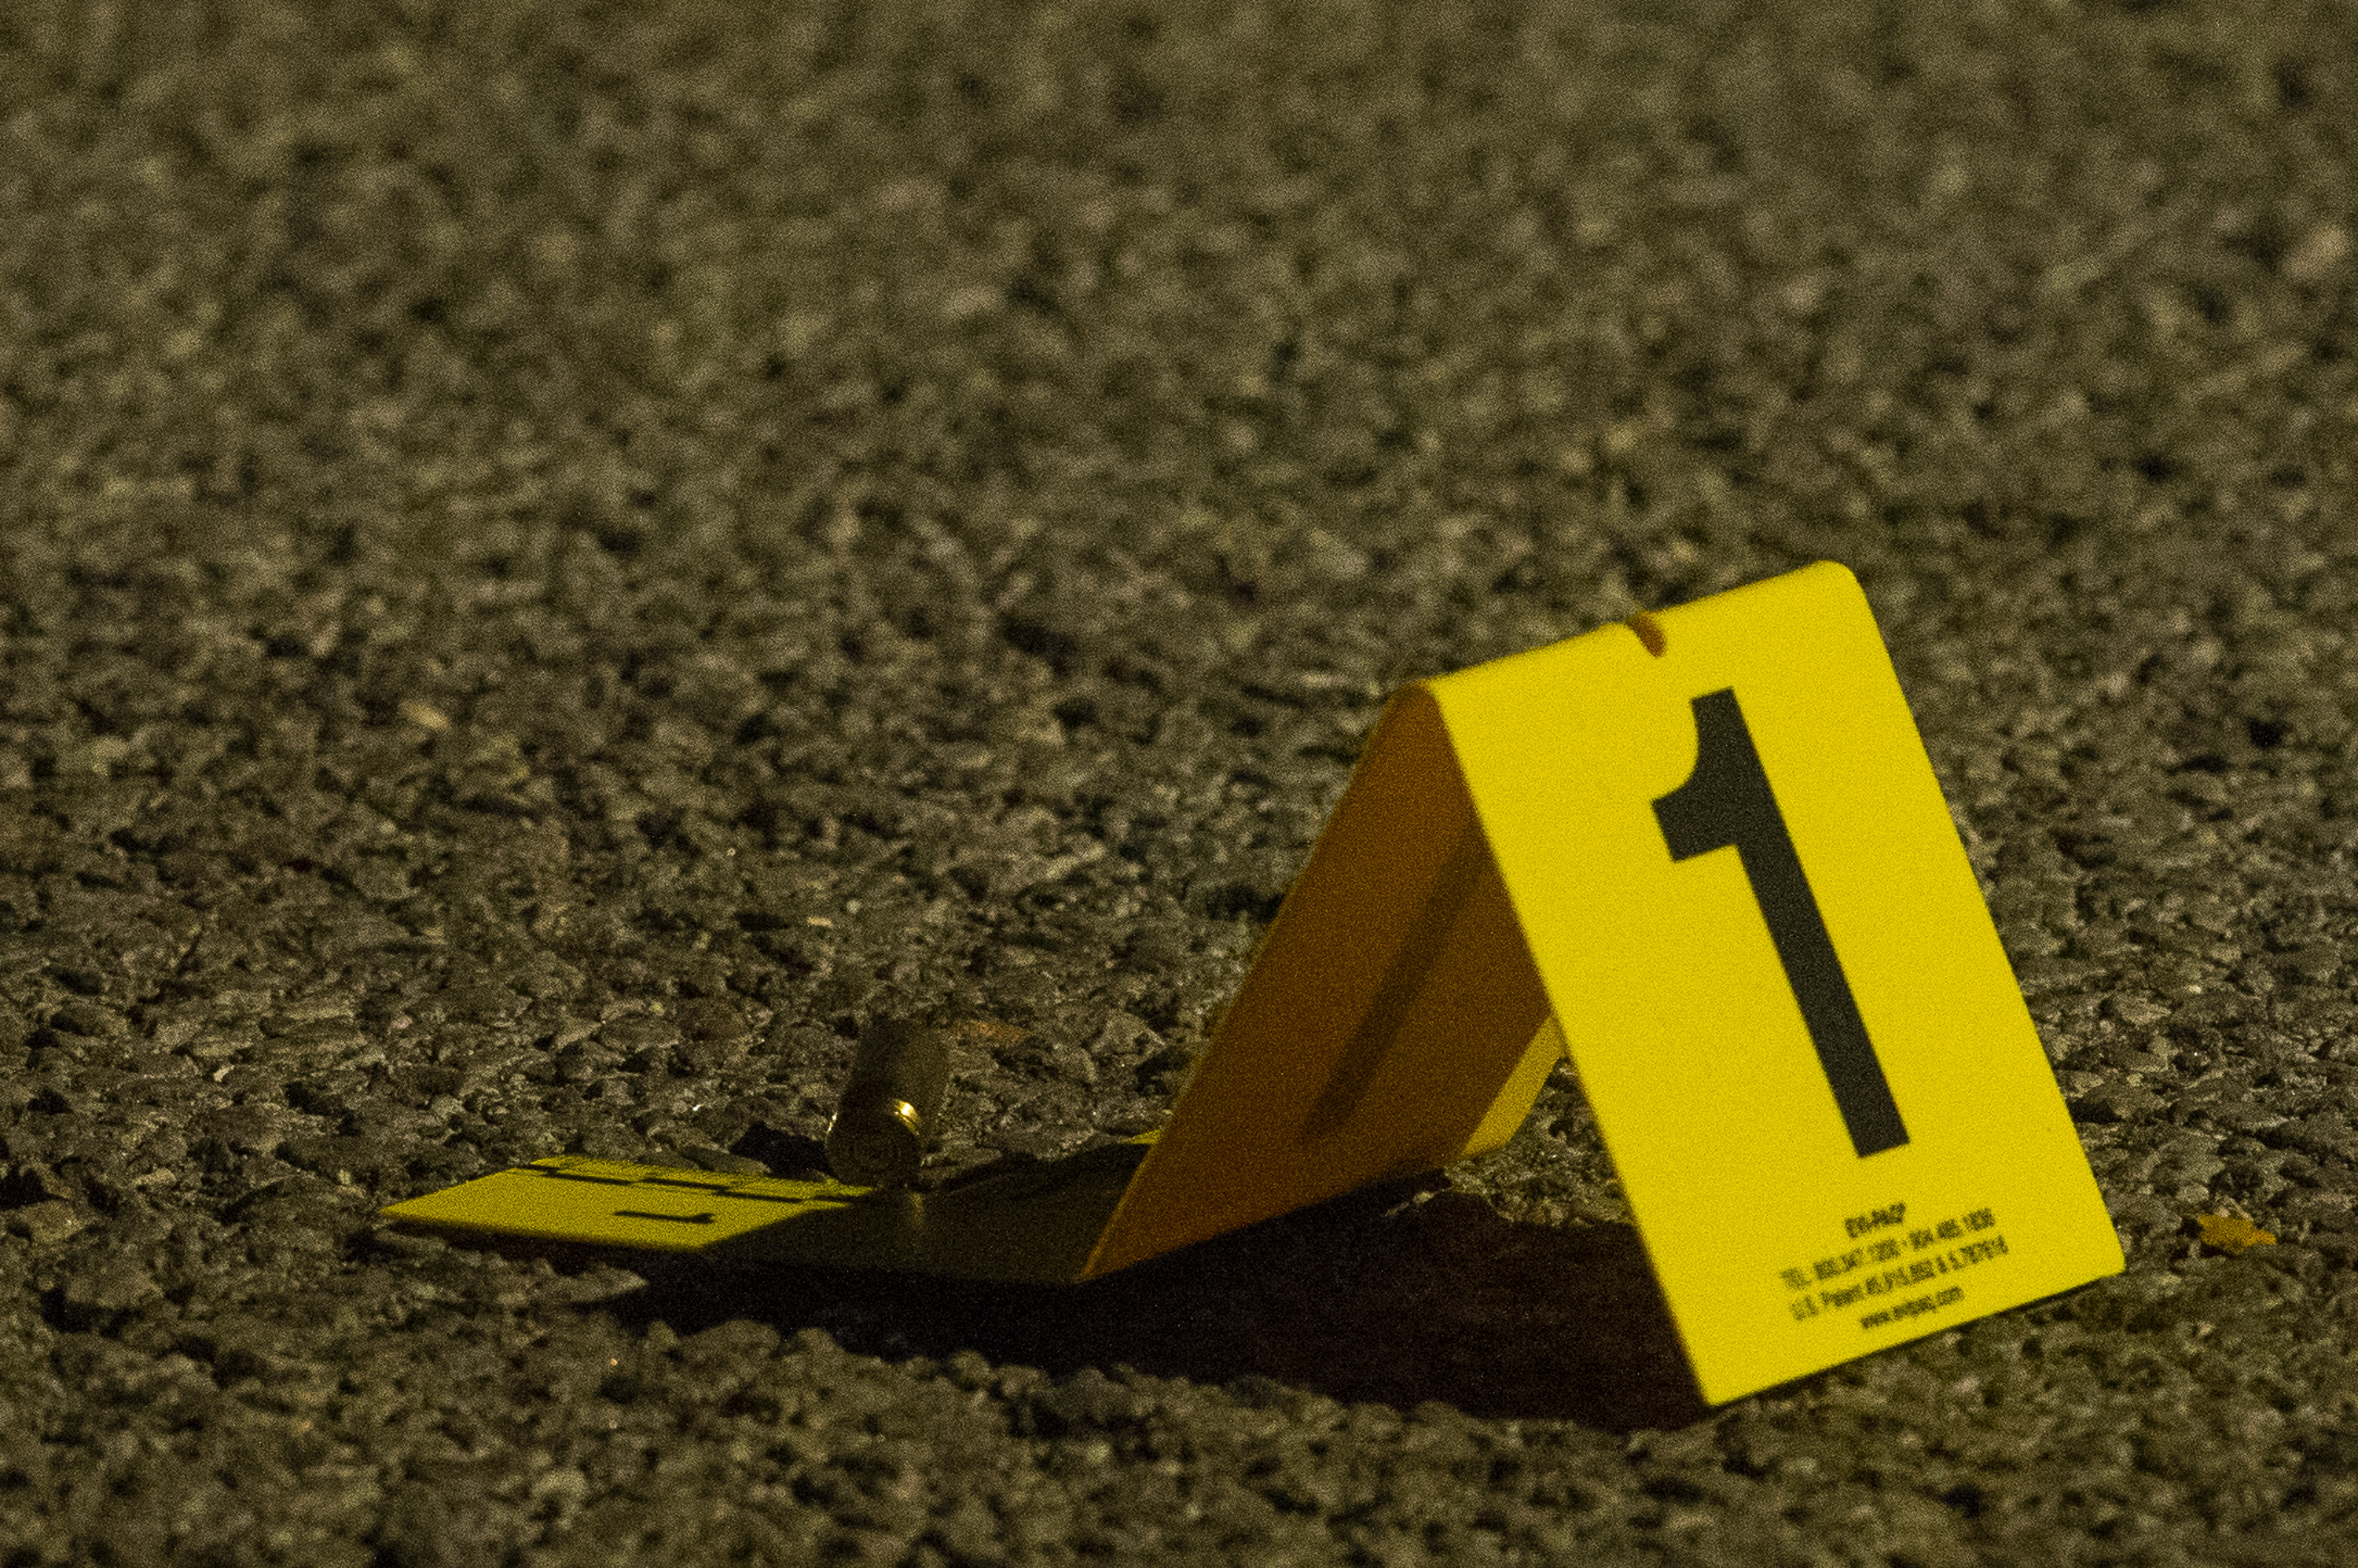 The death of a 16-year-old boy shot in the abdomen April 14, 2020, in McKinley Park has been ruled an accident, according to the Cook County medical examiner's office.